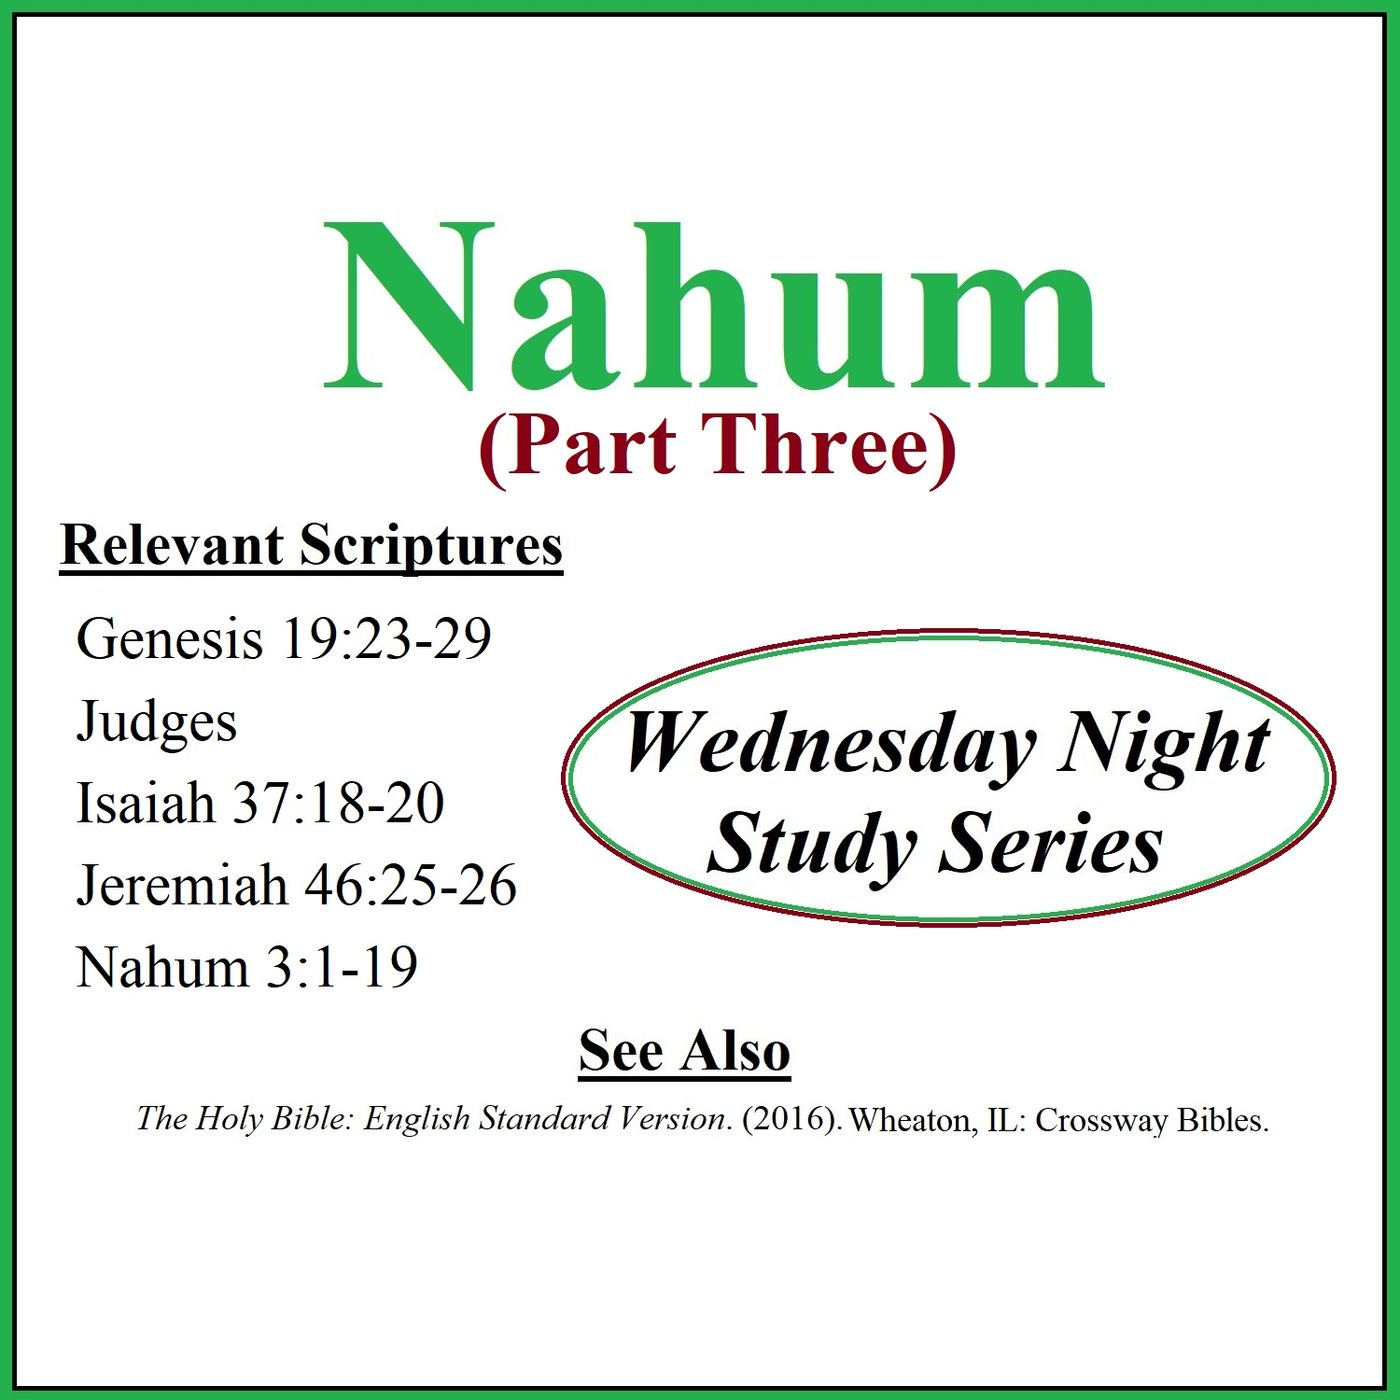 Wednesday Night Study Series - Nahum Part 3 - Weed, Women in Combat, NFL